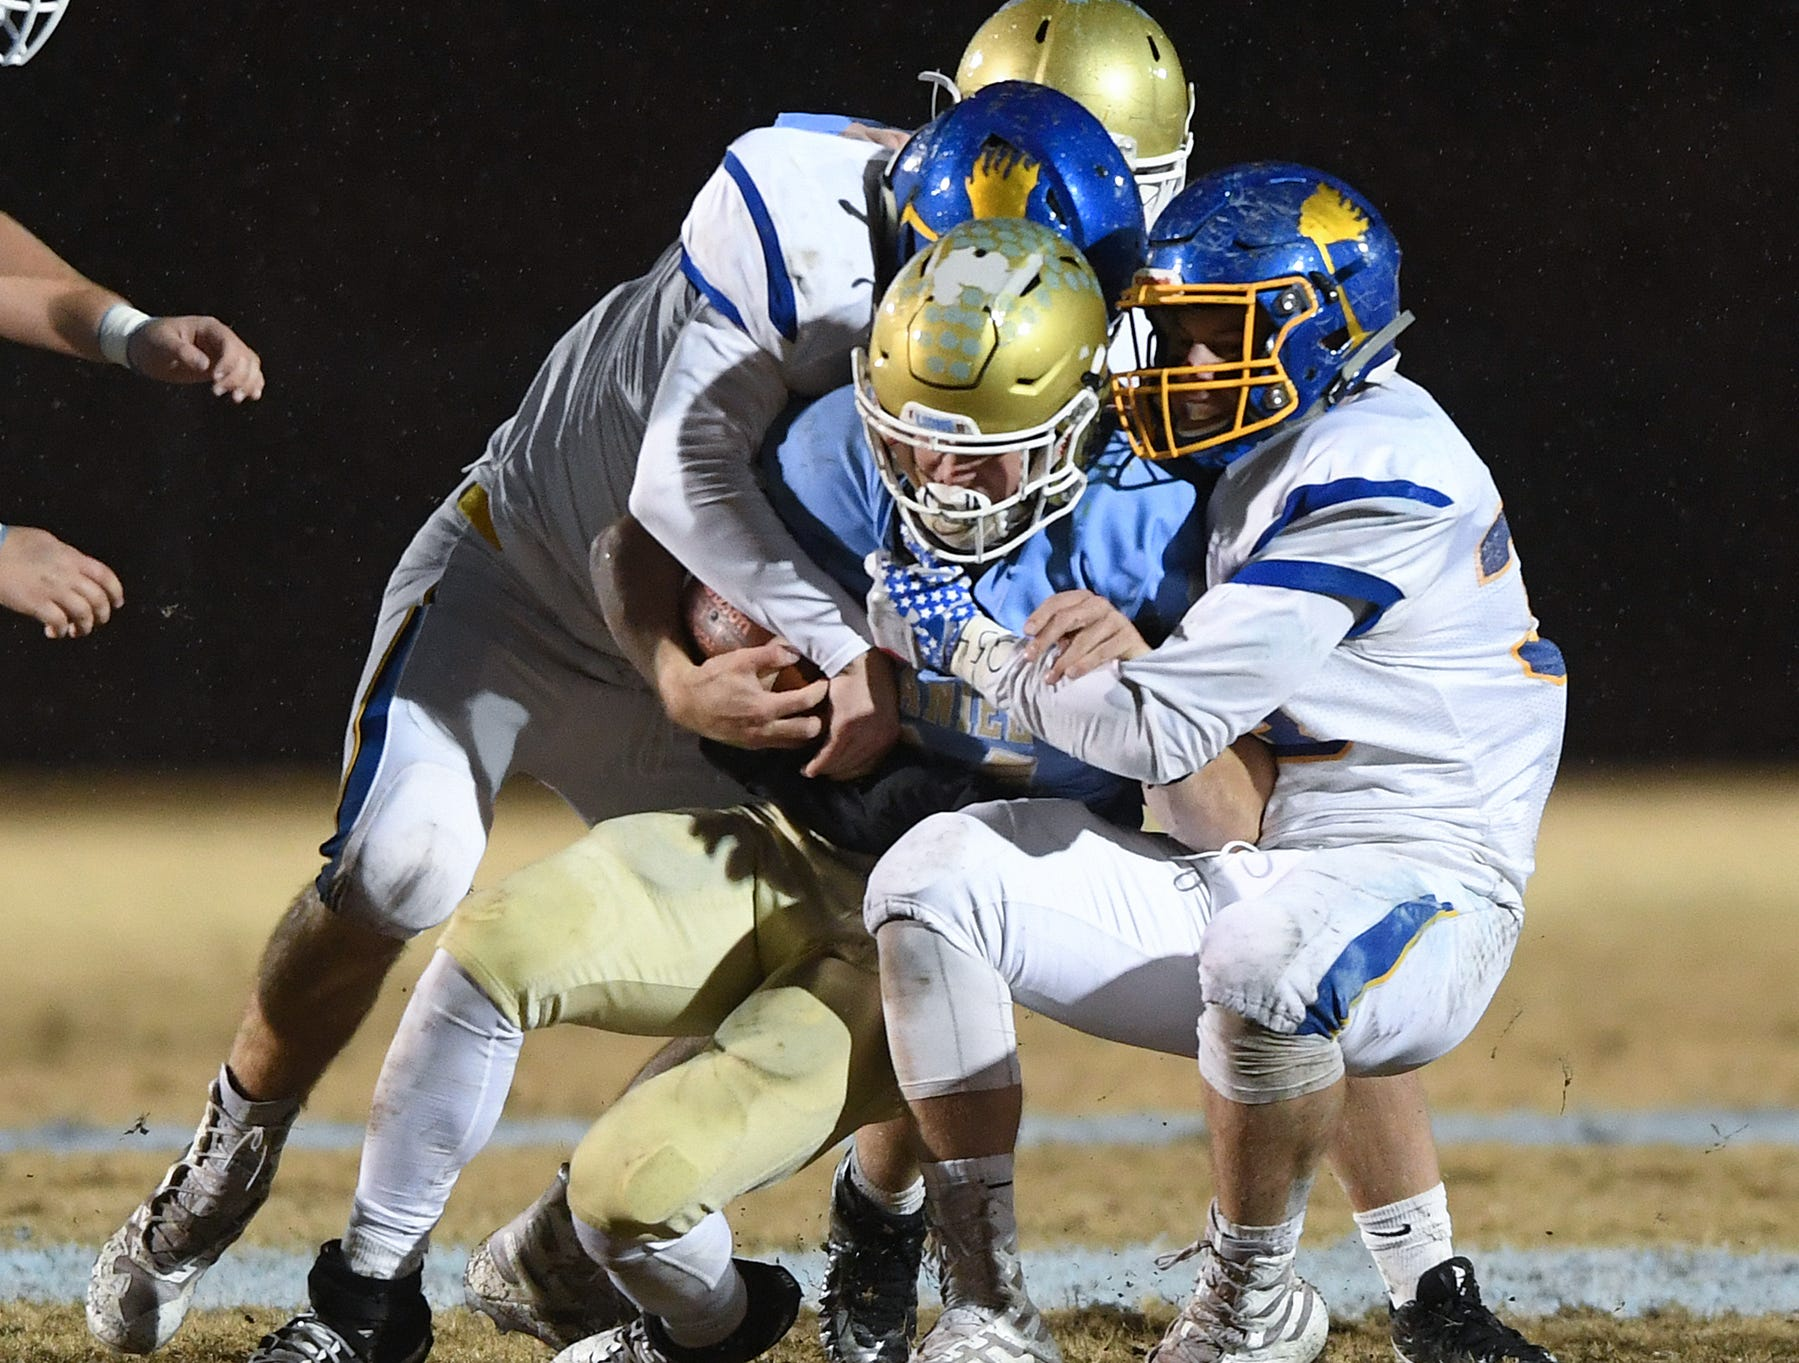 Daniel quarterback Tyler Venables (24) is brought down by the Wren defense during the third round of the class AAAA playoffs Friday, November 23, 2018, at Daniel High in Central.